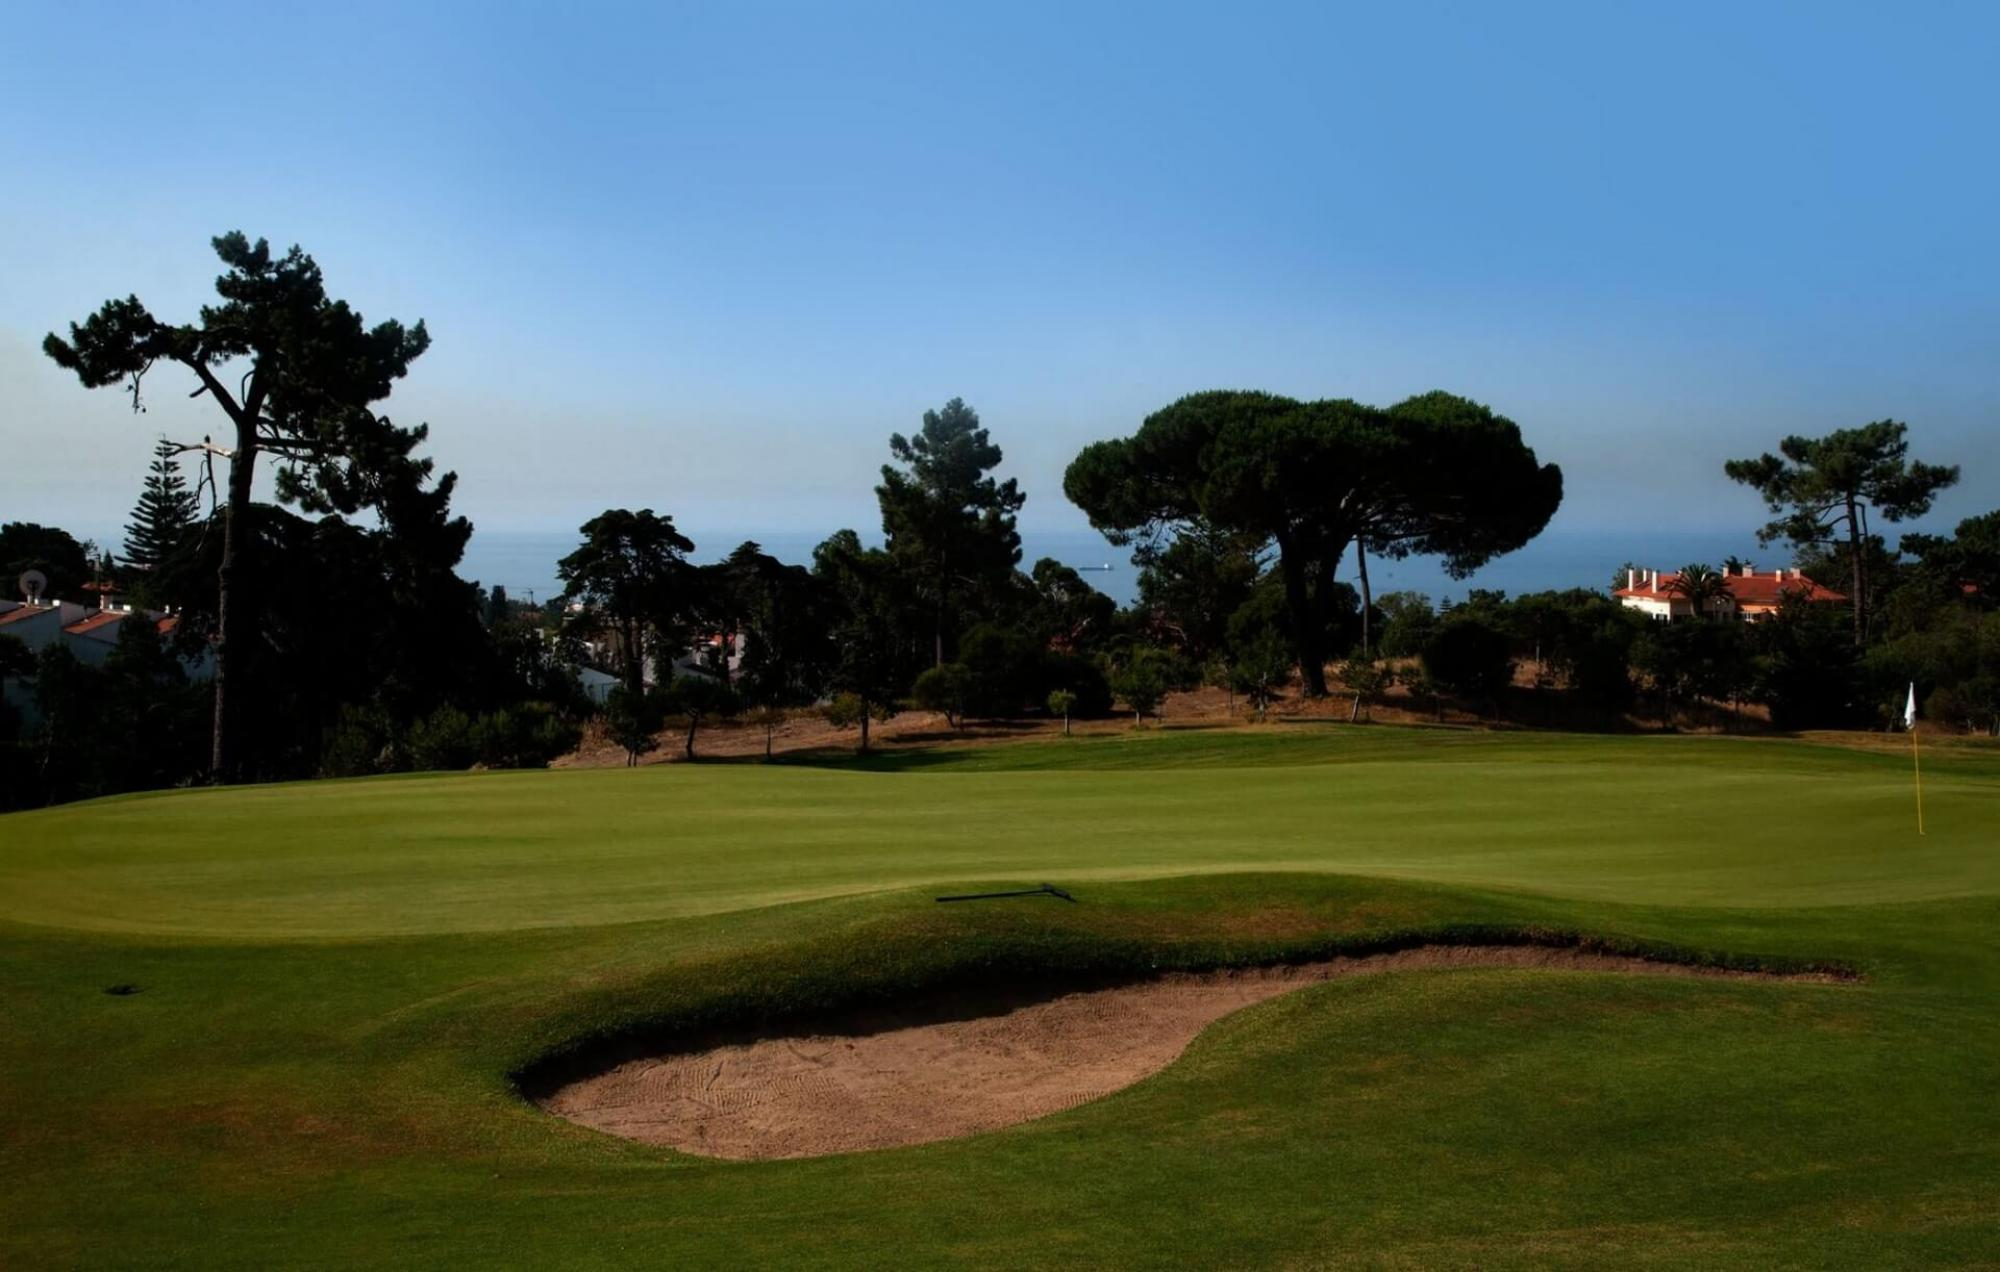 The Estoril Palacio Golf Course's lovely golf course within sensational Lisbon.